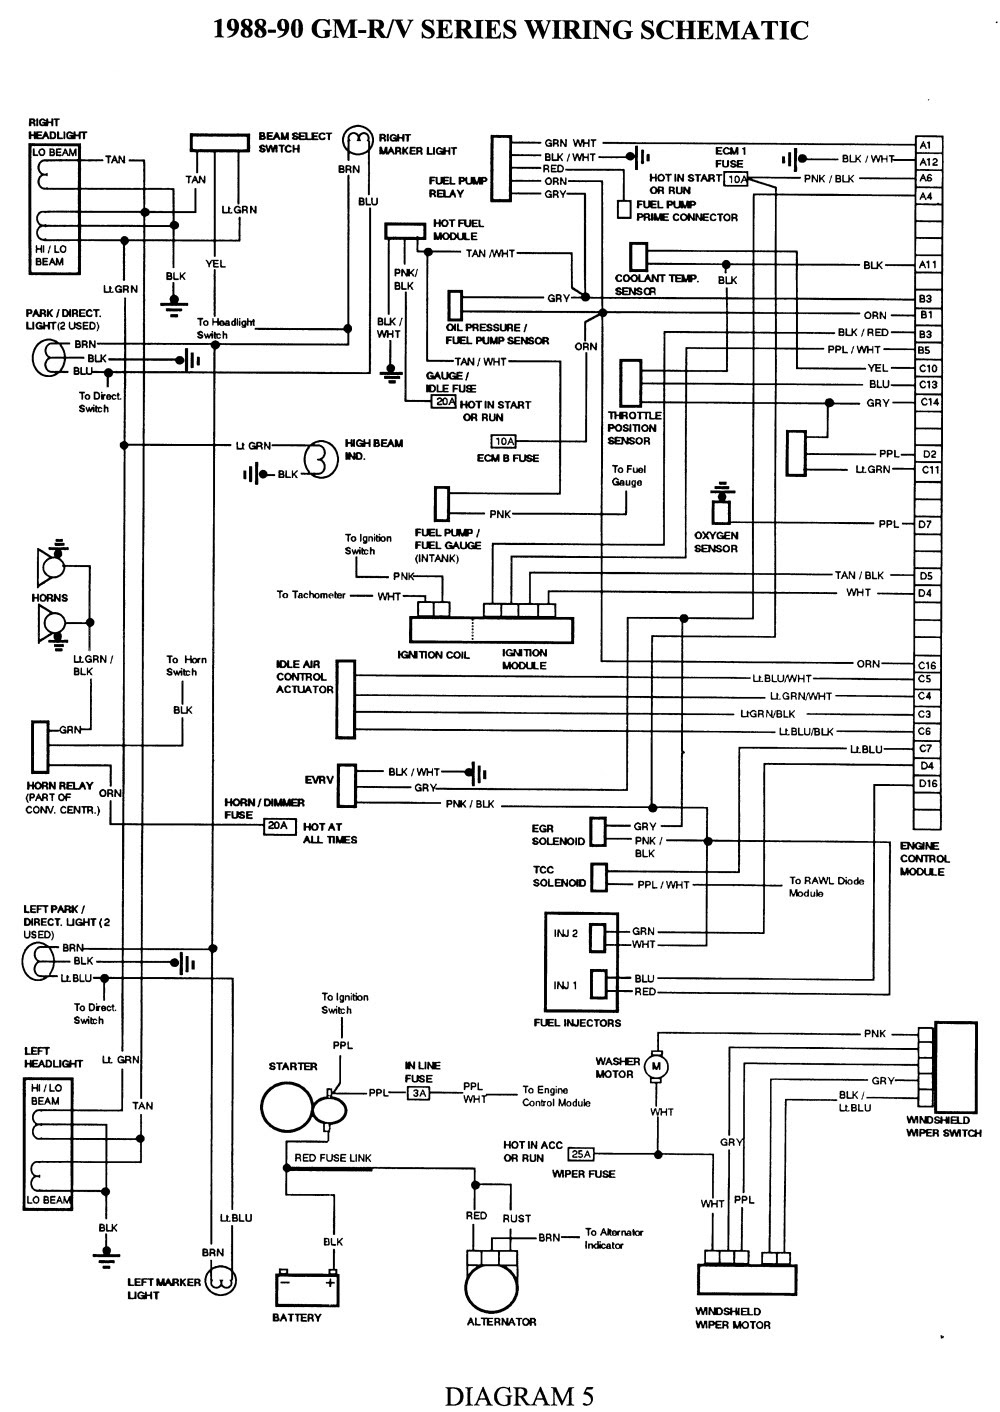 diagram] 95 gmc door lock wiring diagram full version hd quality wiring  diagram - diagramngocg.u-nite.it  u-nite.it